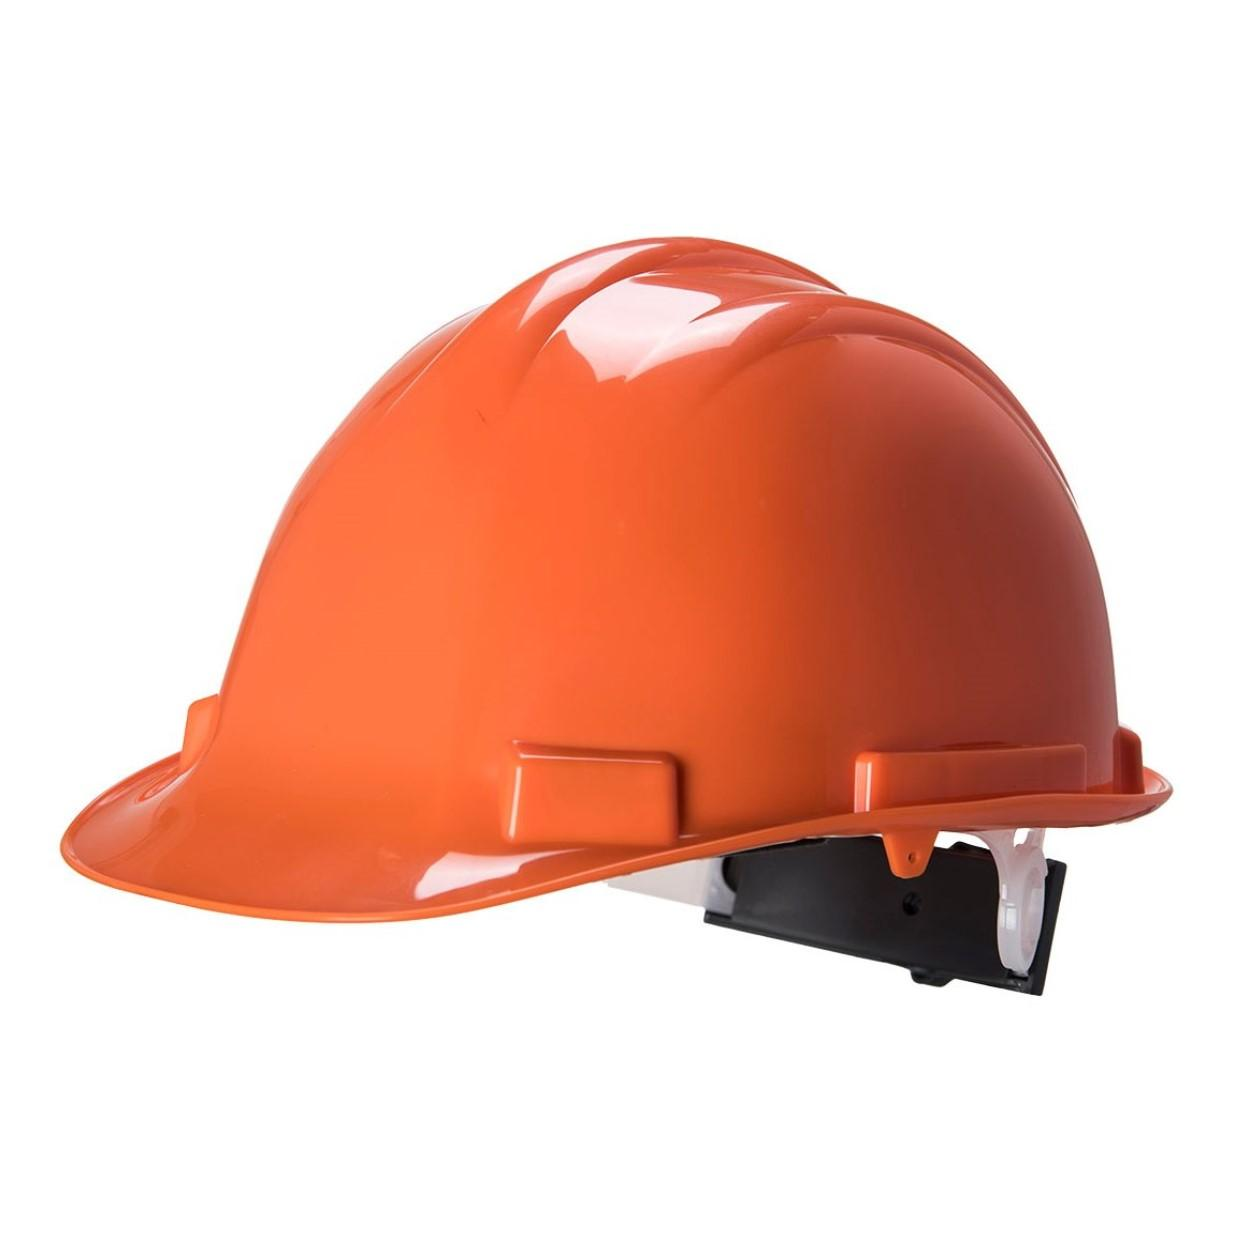 Casque de securite expertbase portwest ps57 2005